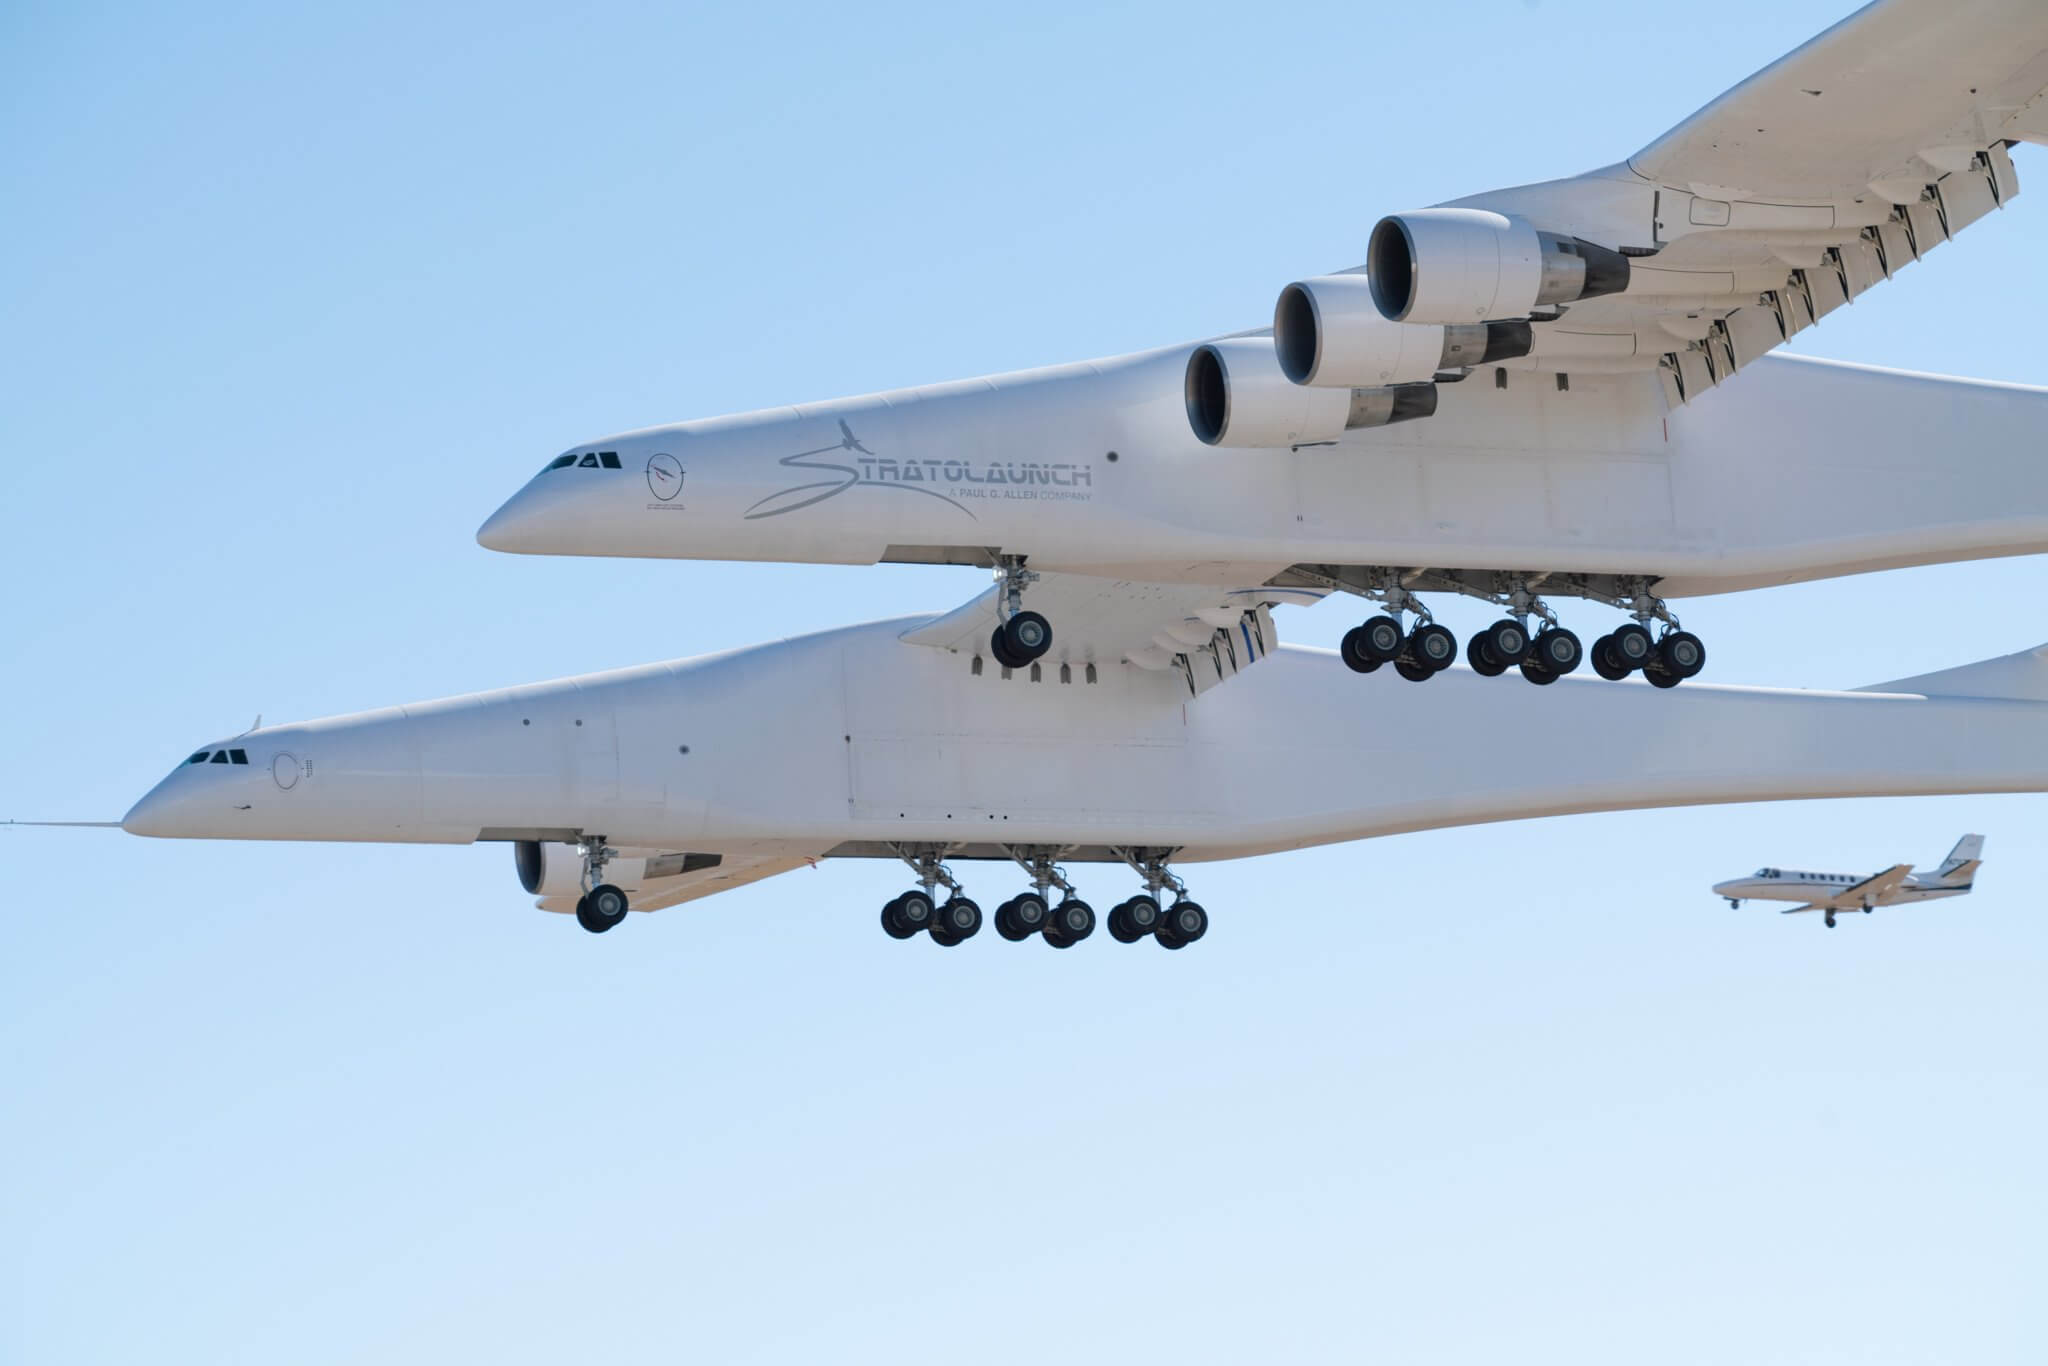 Watch the World's Largest Aircraft Soar to the Skies